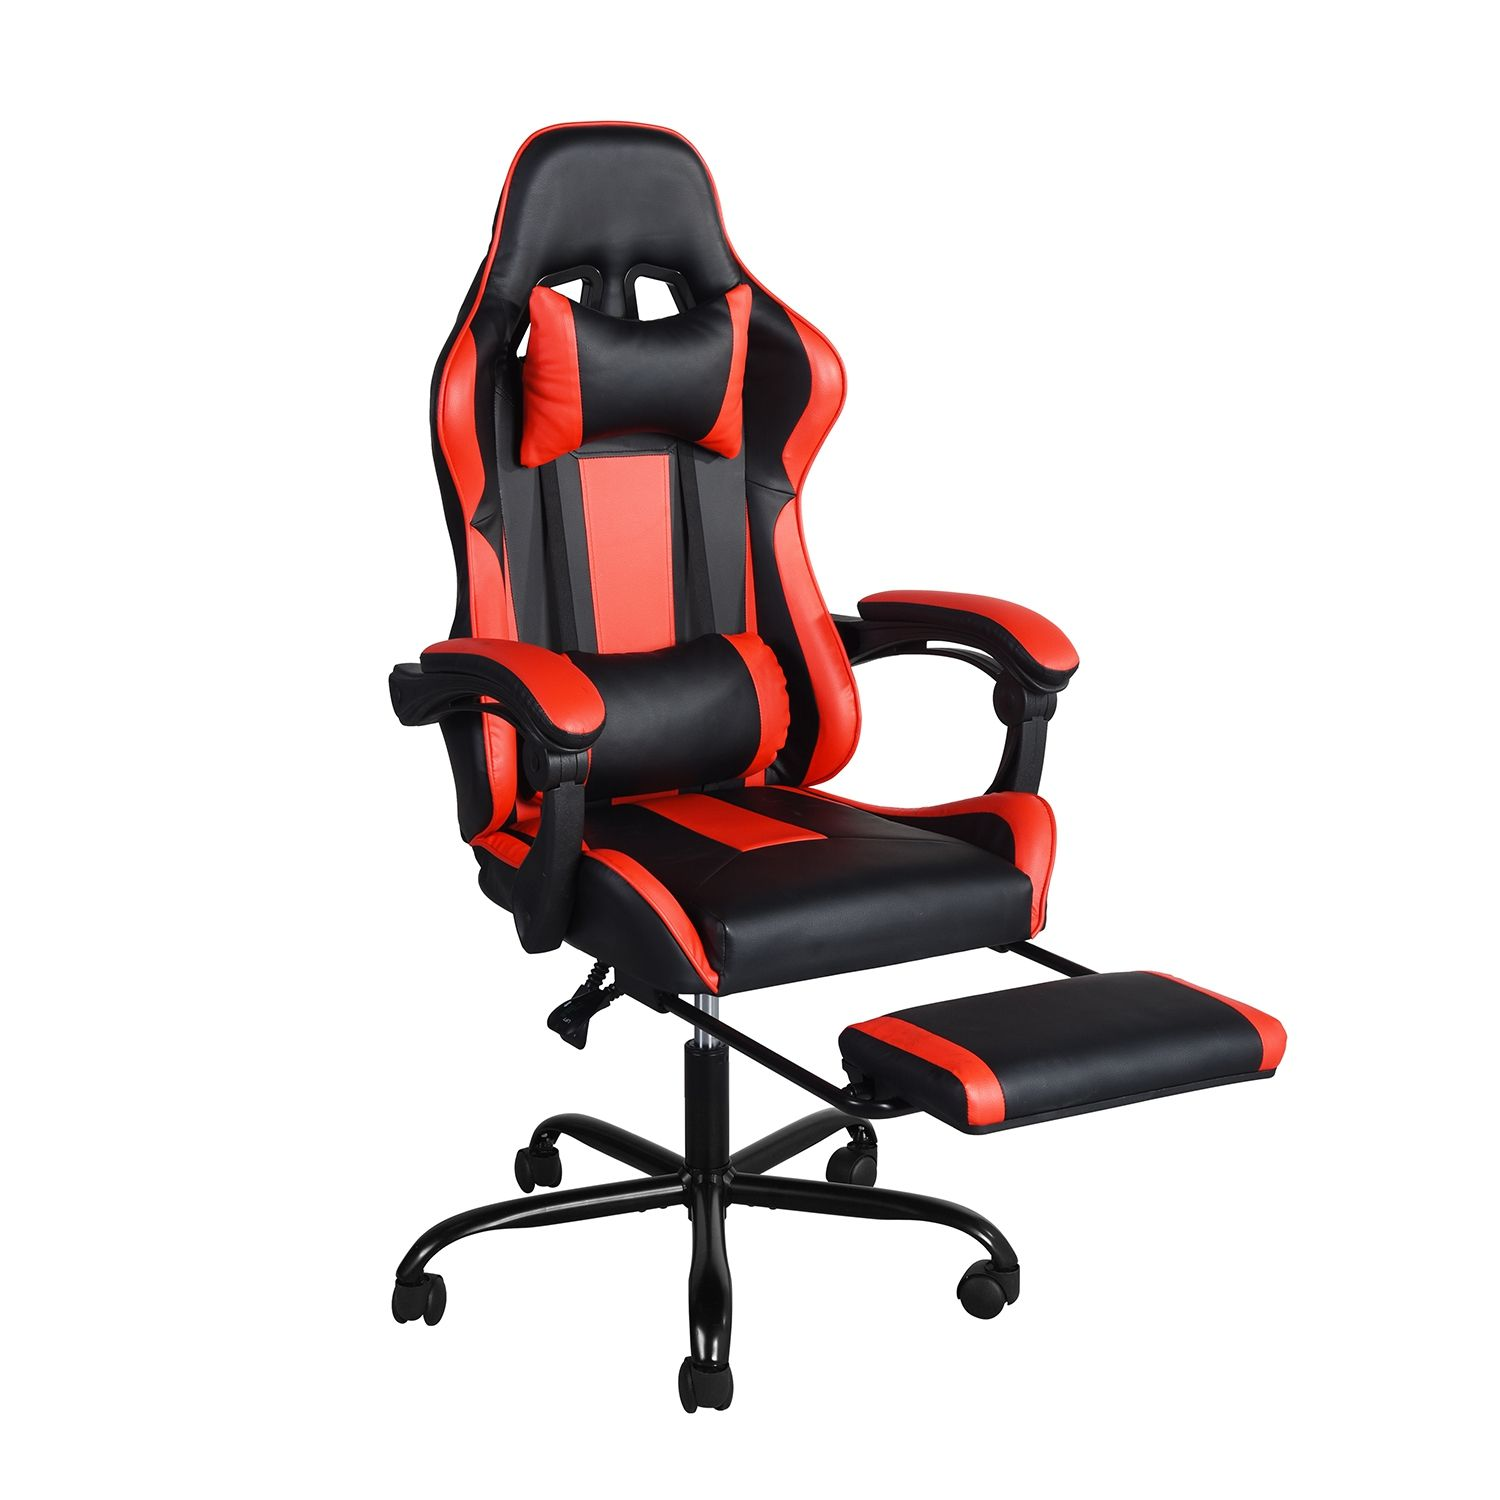 Reclining Swivel Gaming Chair with footrest : Office Chairs - Best